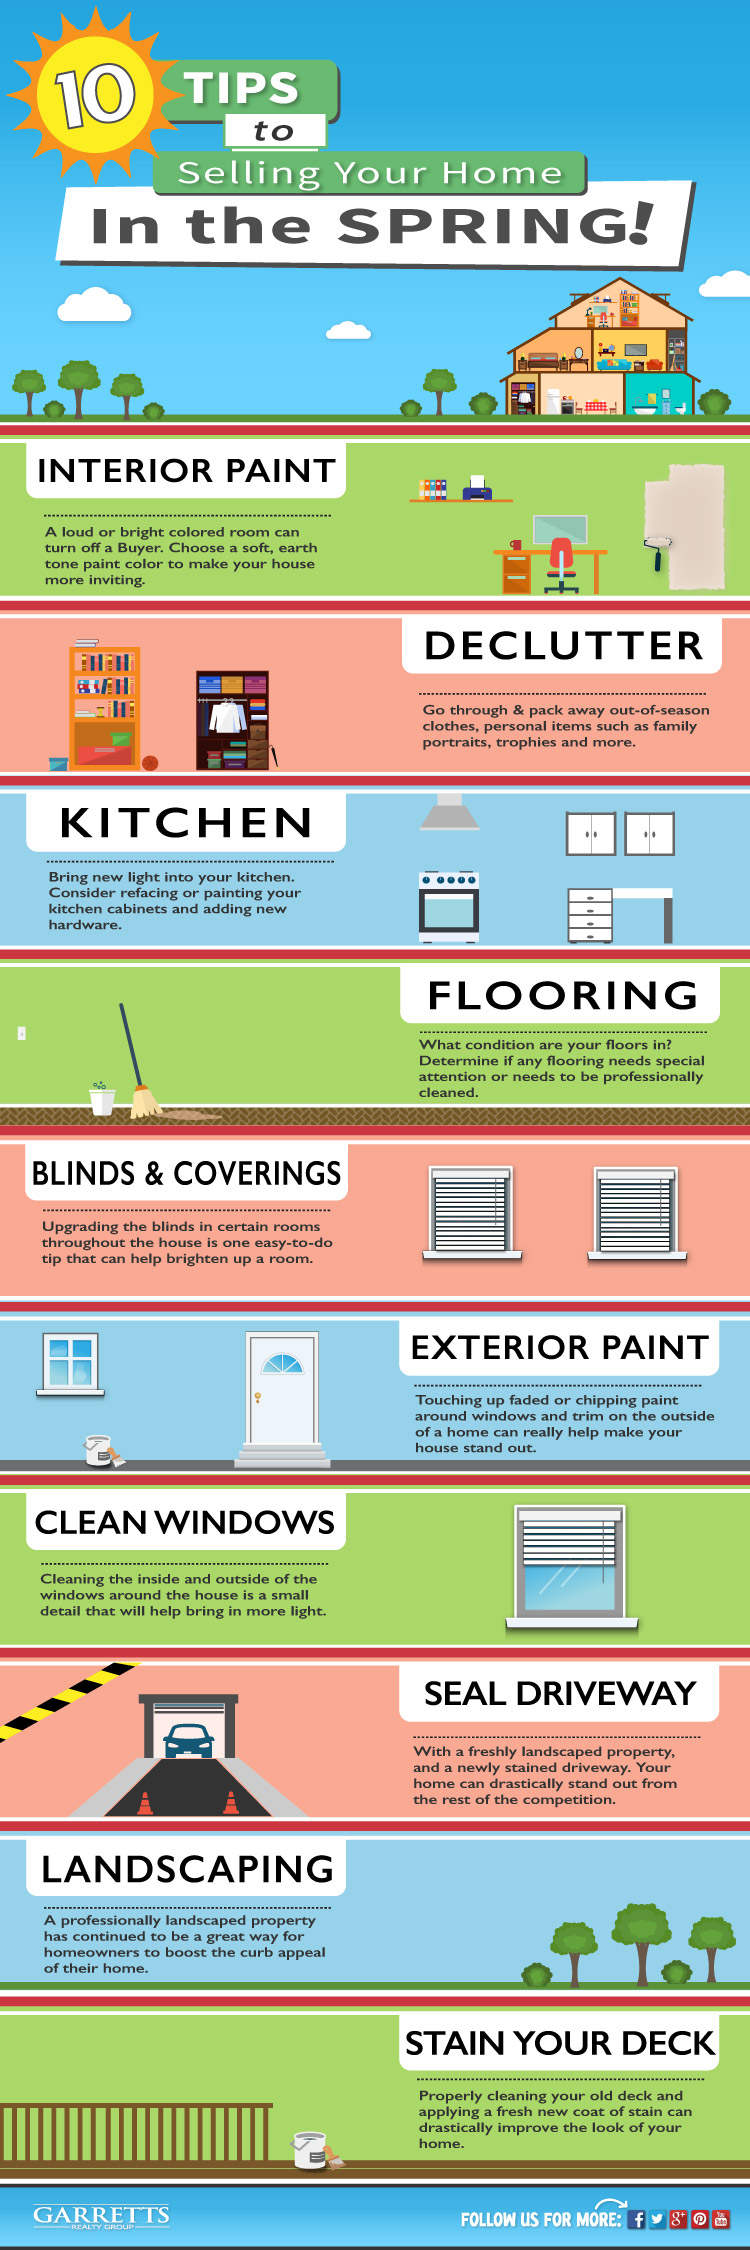 Tips to Selling your Home in the Spring Infographic - Real Estate